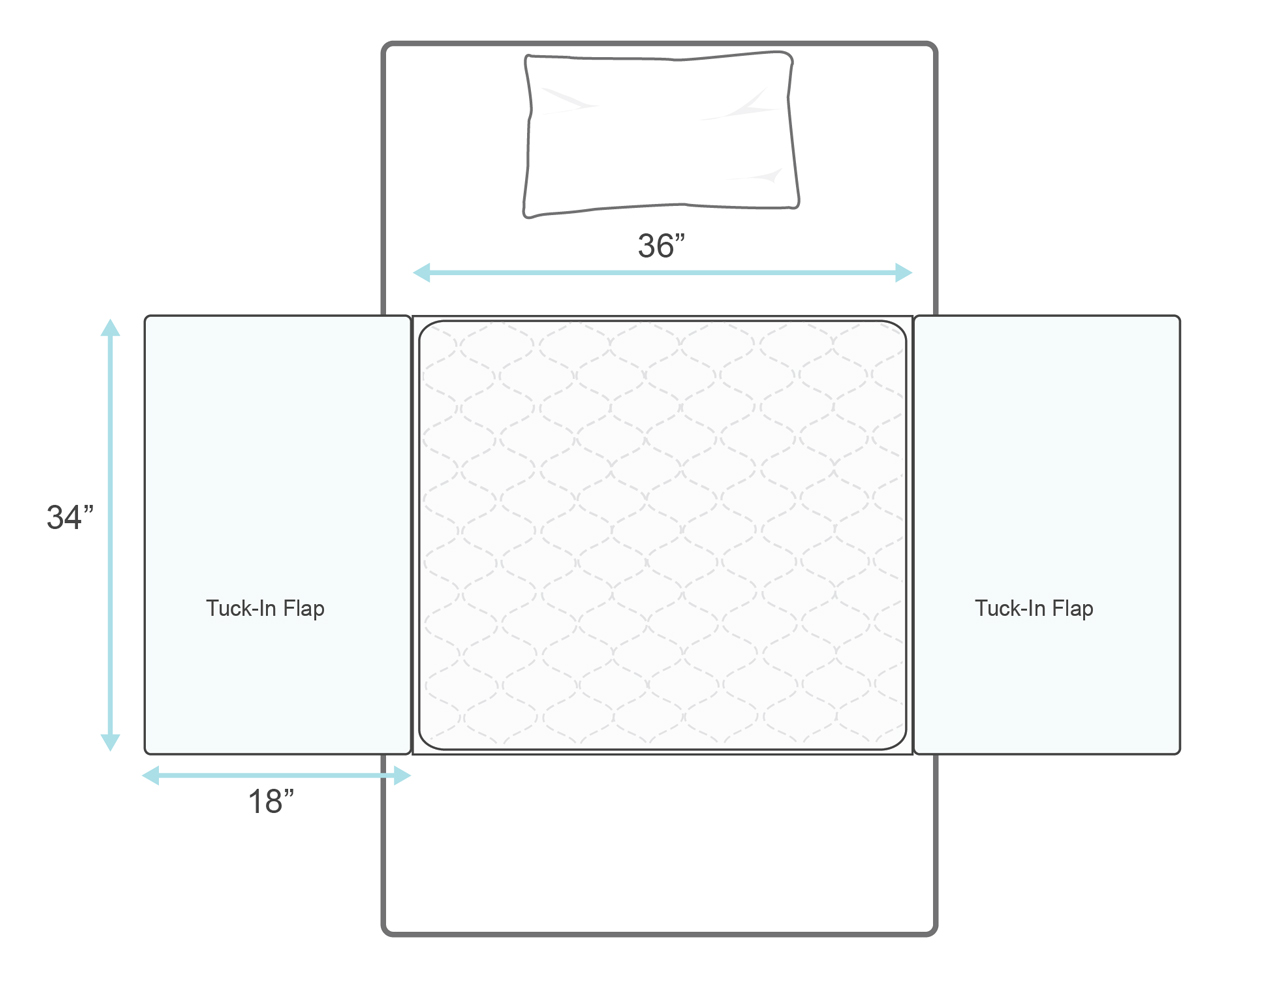 Priva Ultra 36x34 Waterproof Sheet Protectors with tuckable flaps on both sides.